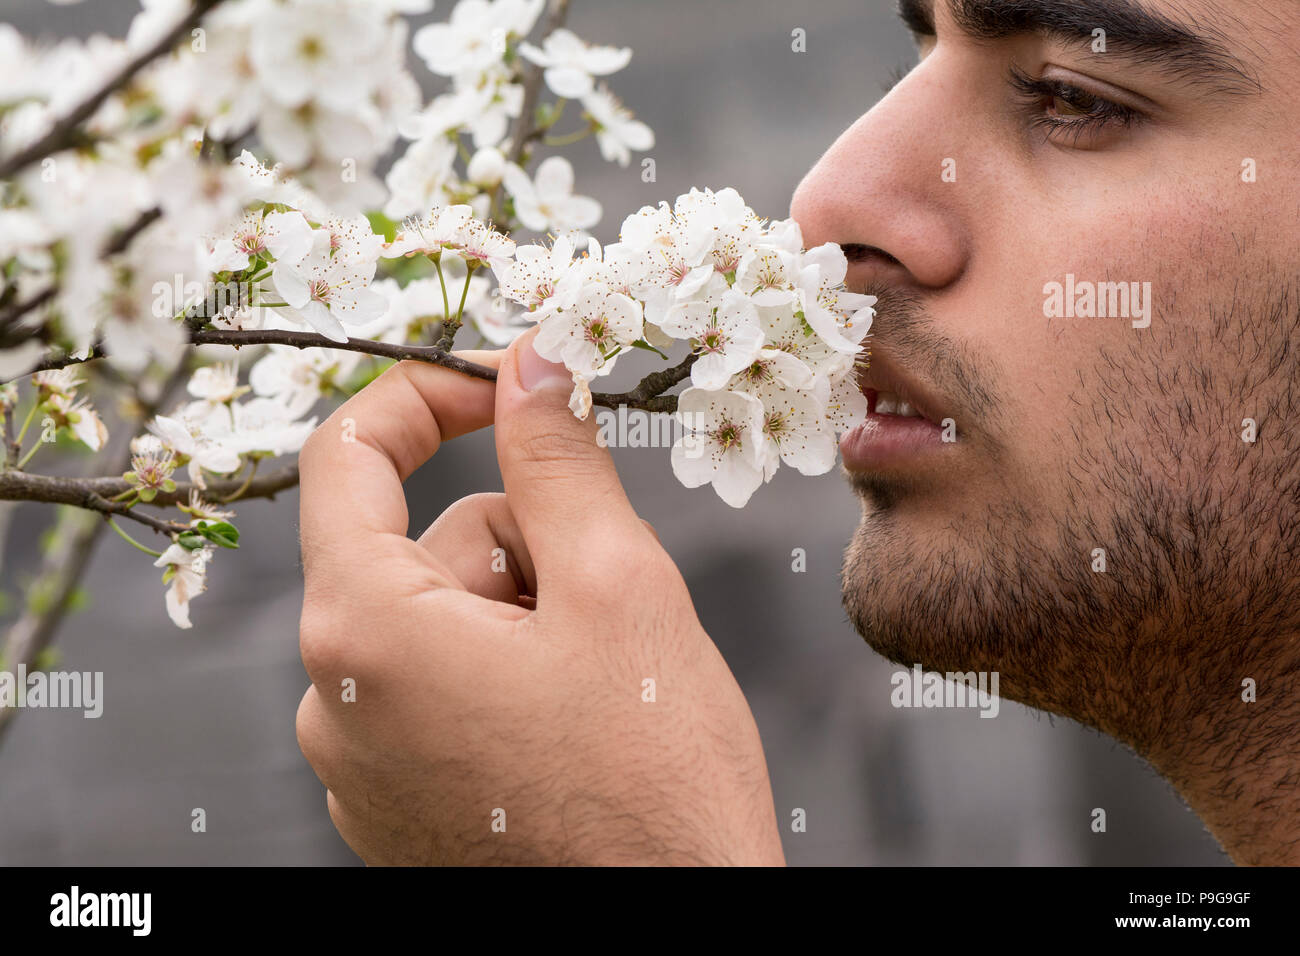 Young man enjoying from spring time plum tree buds odor, close-up portrait. - Stock Image